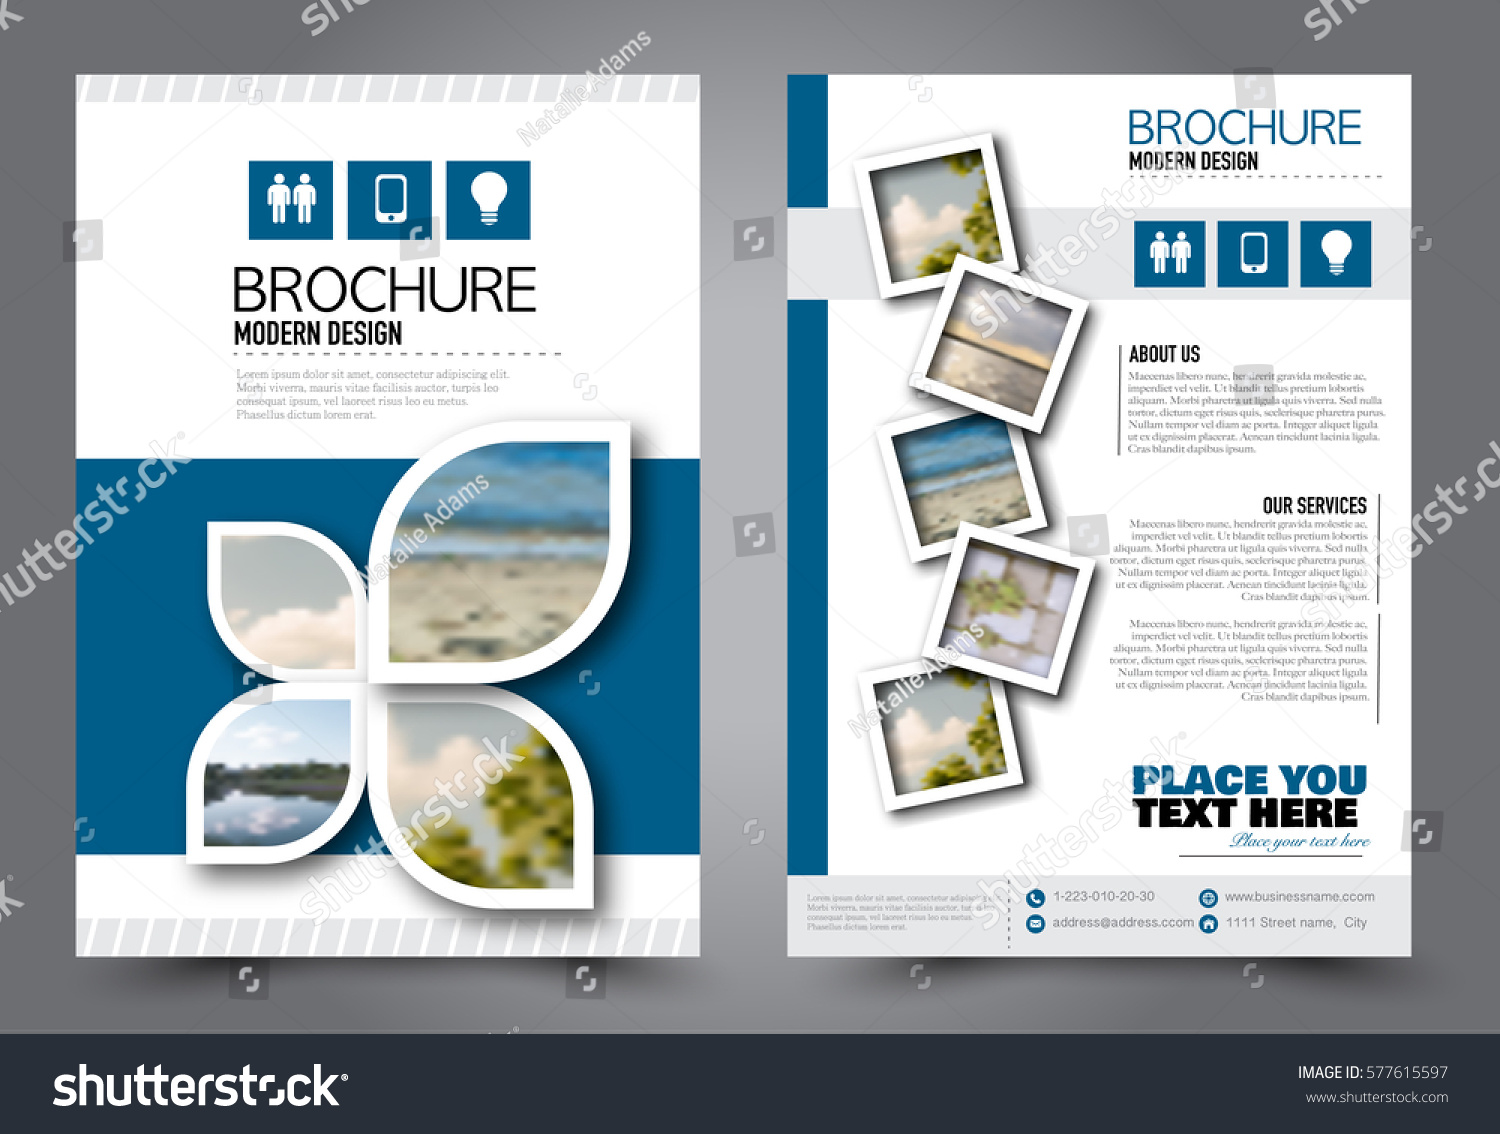 Flyer design business brochure template annual stock for Company brochure template